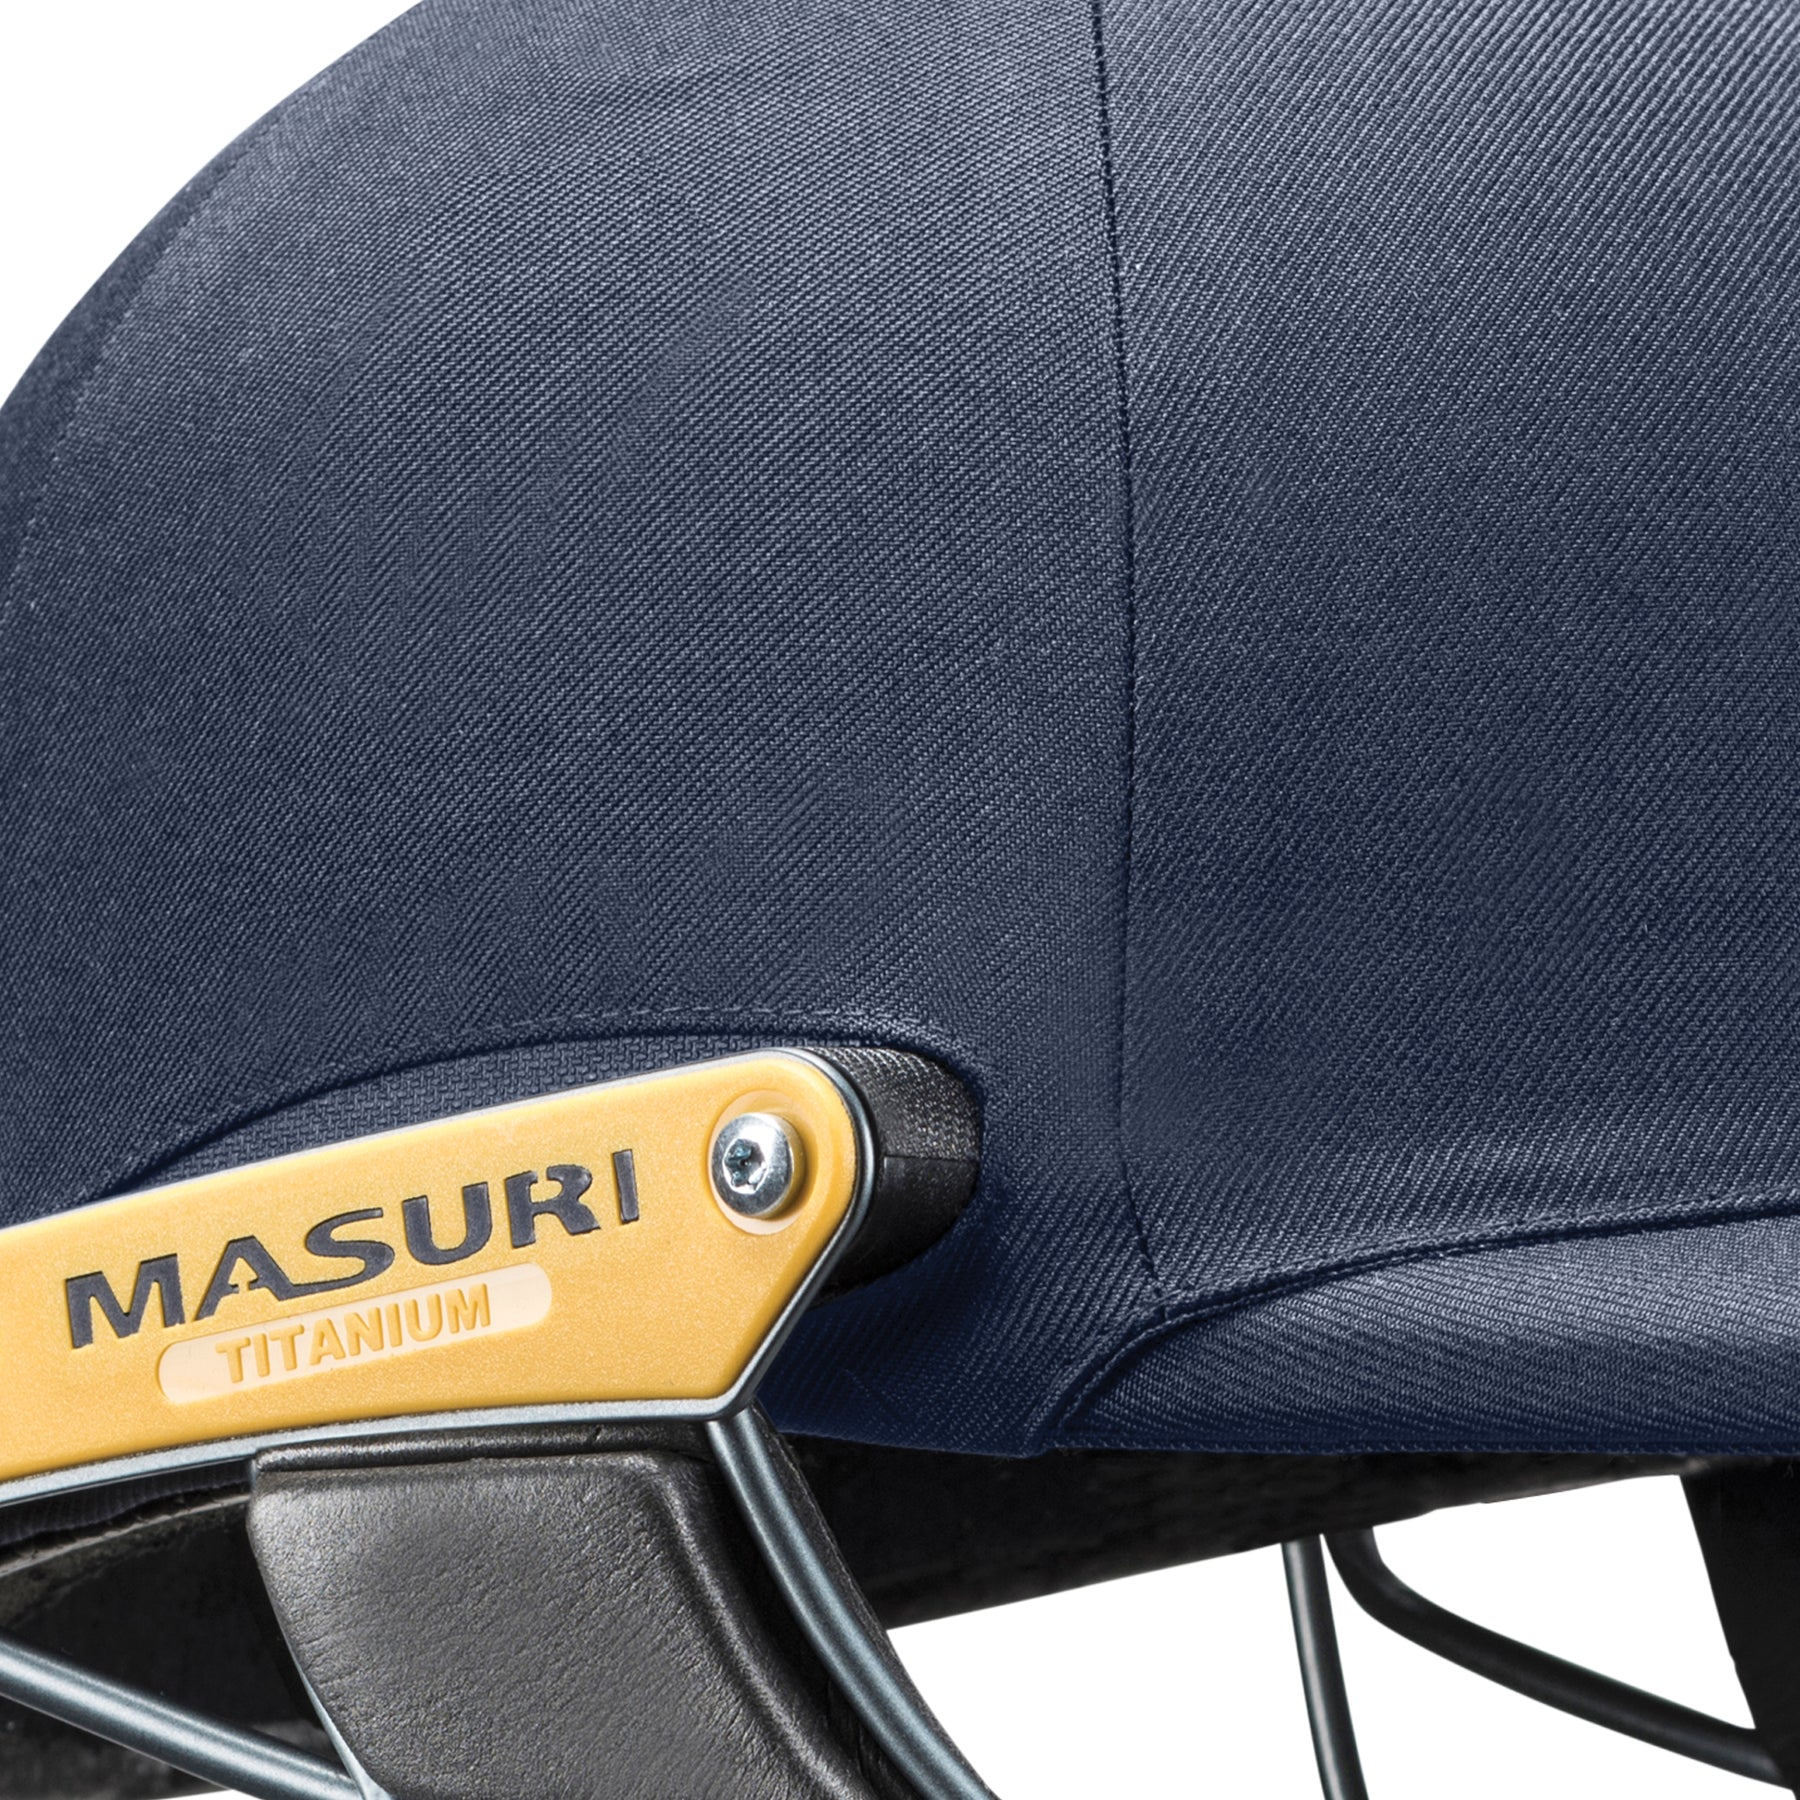 MASURI E LINE TITANIUM CRICKET HELMET - TRADE ACCOUNTS